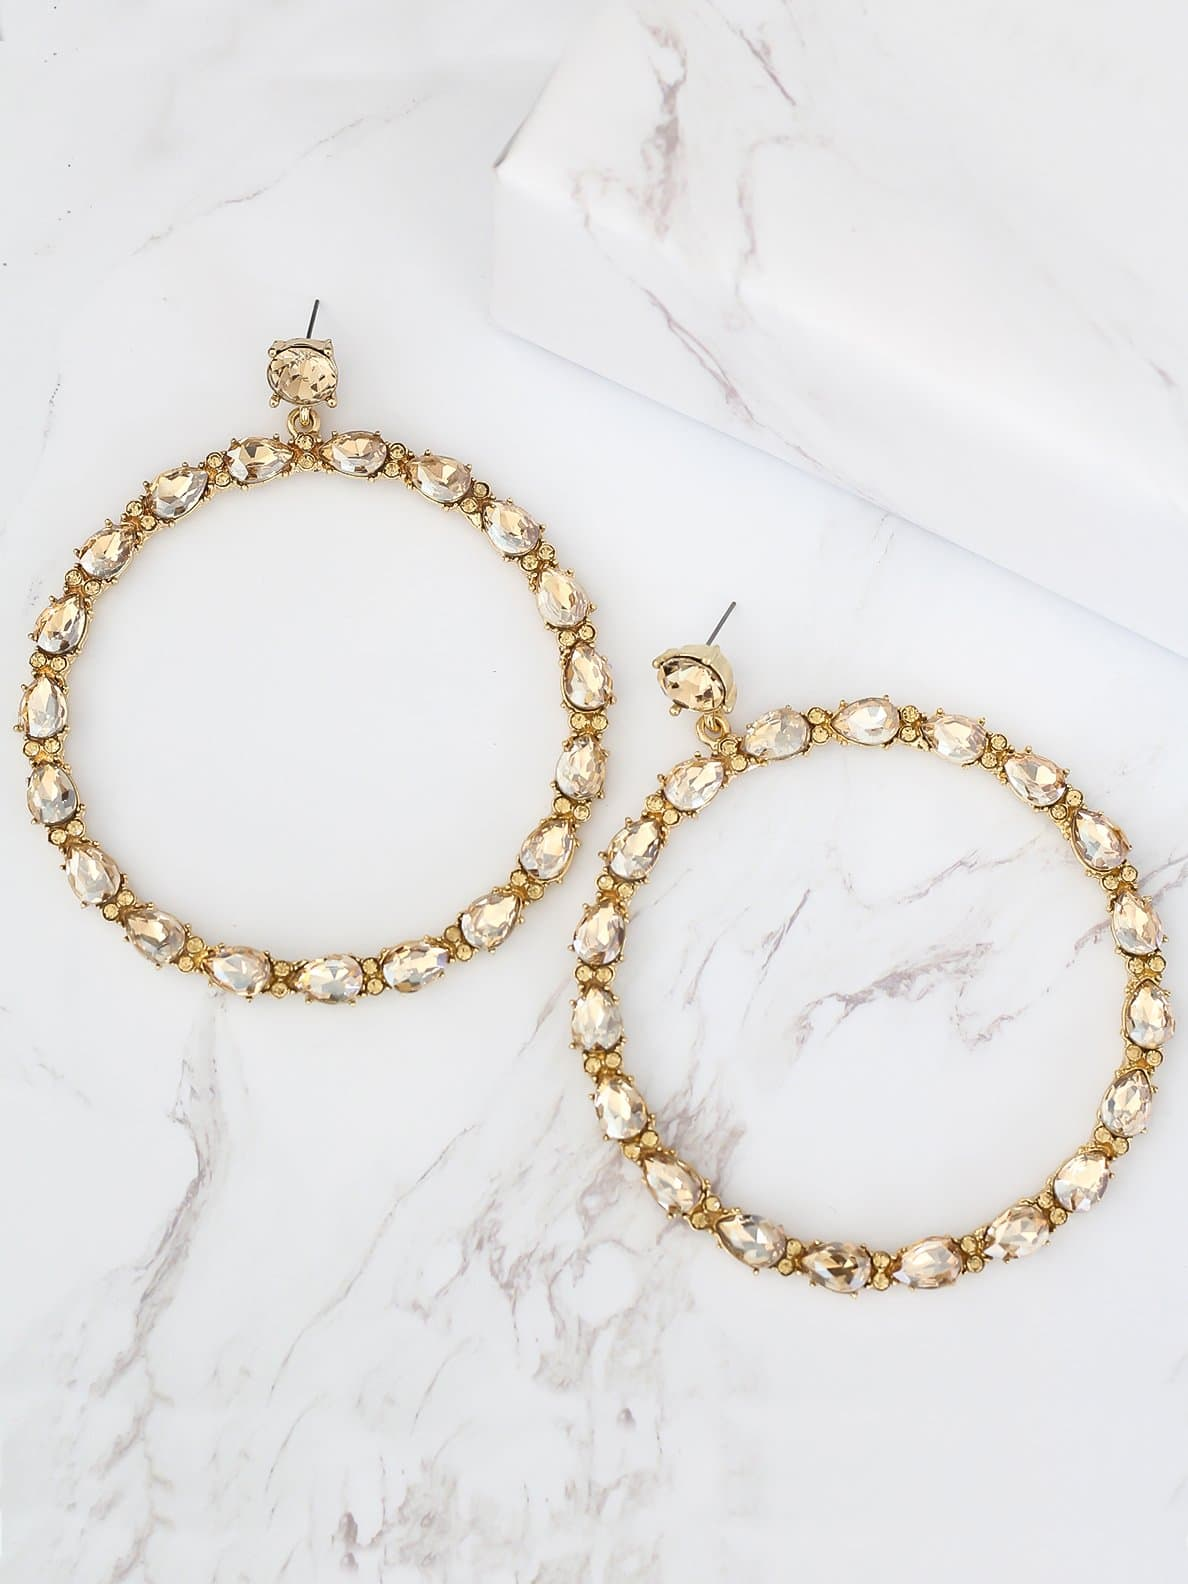 Bellofox Alexa Oversized Hoops Earrings BE3417